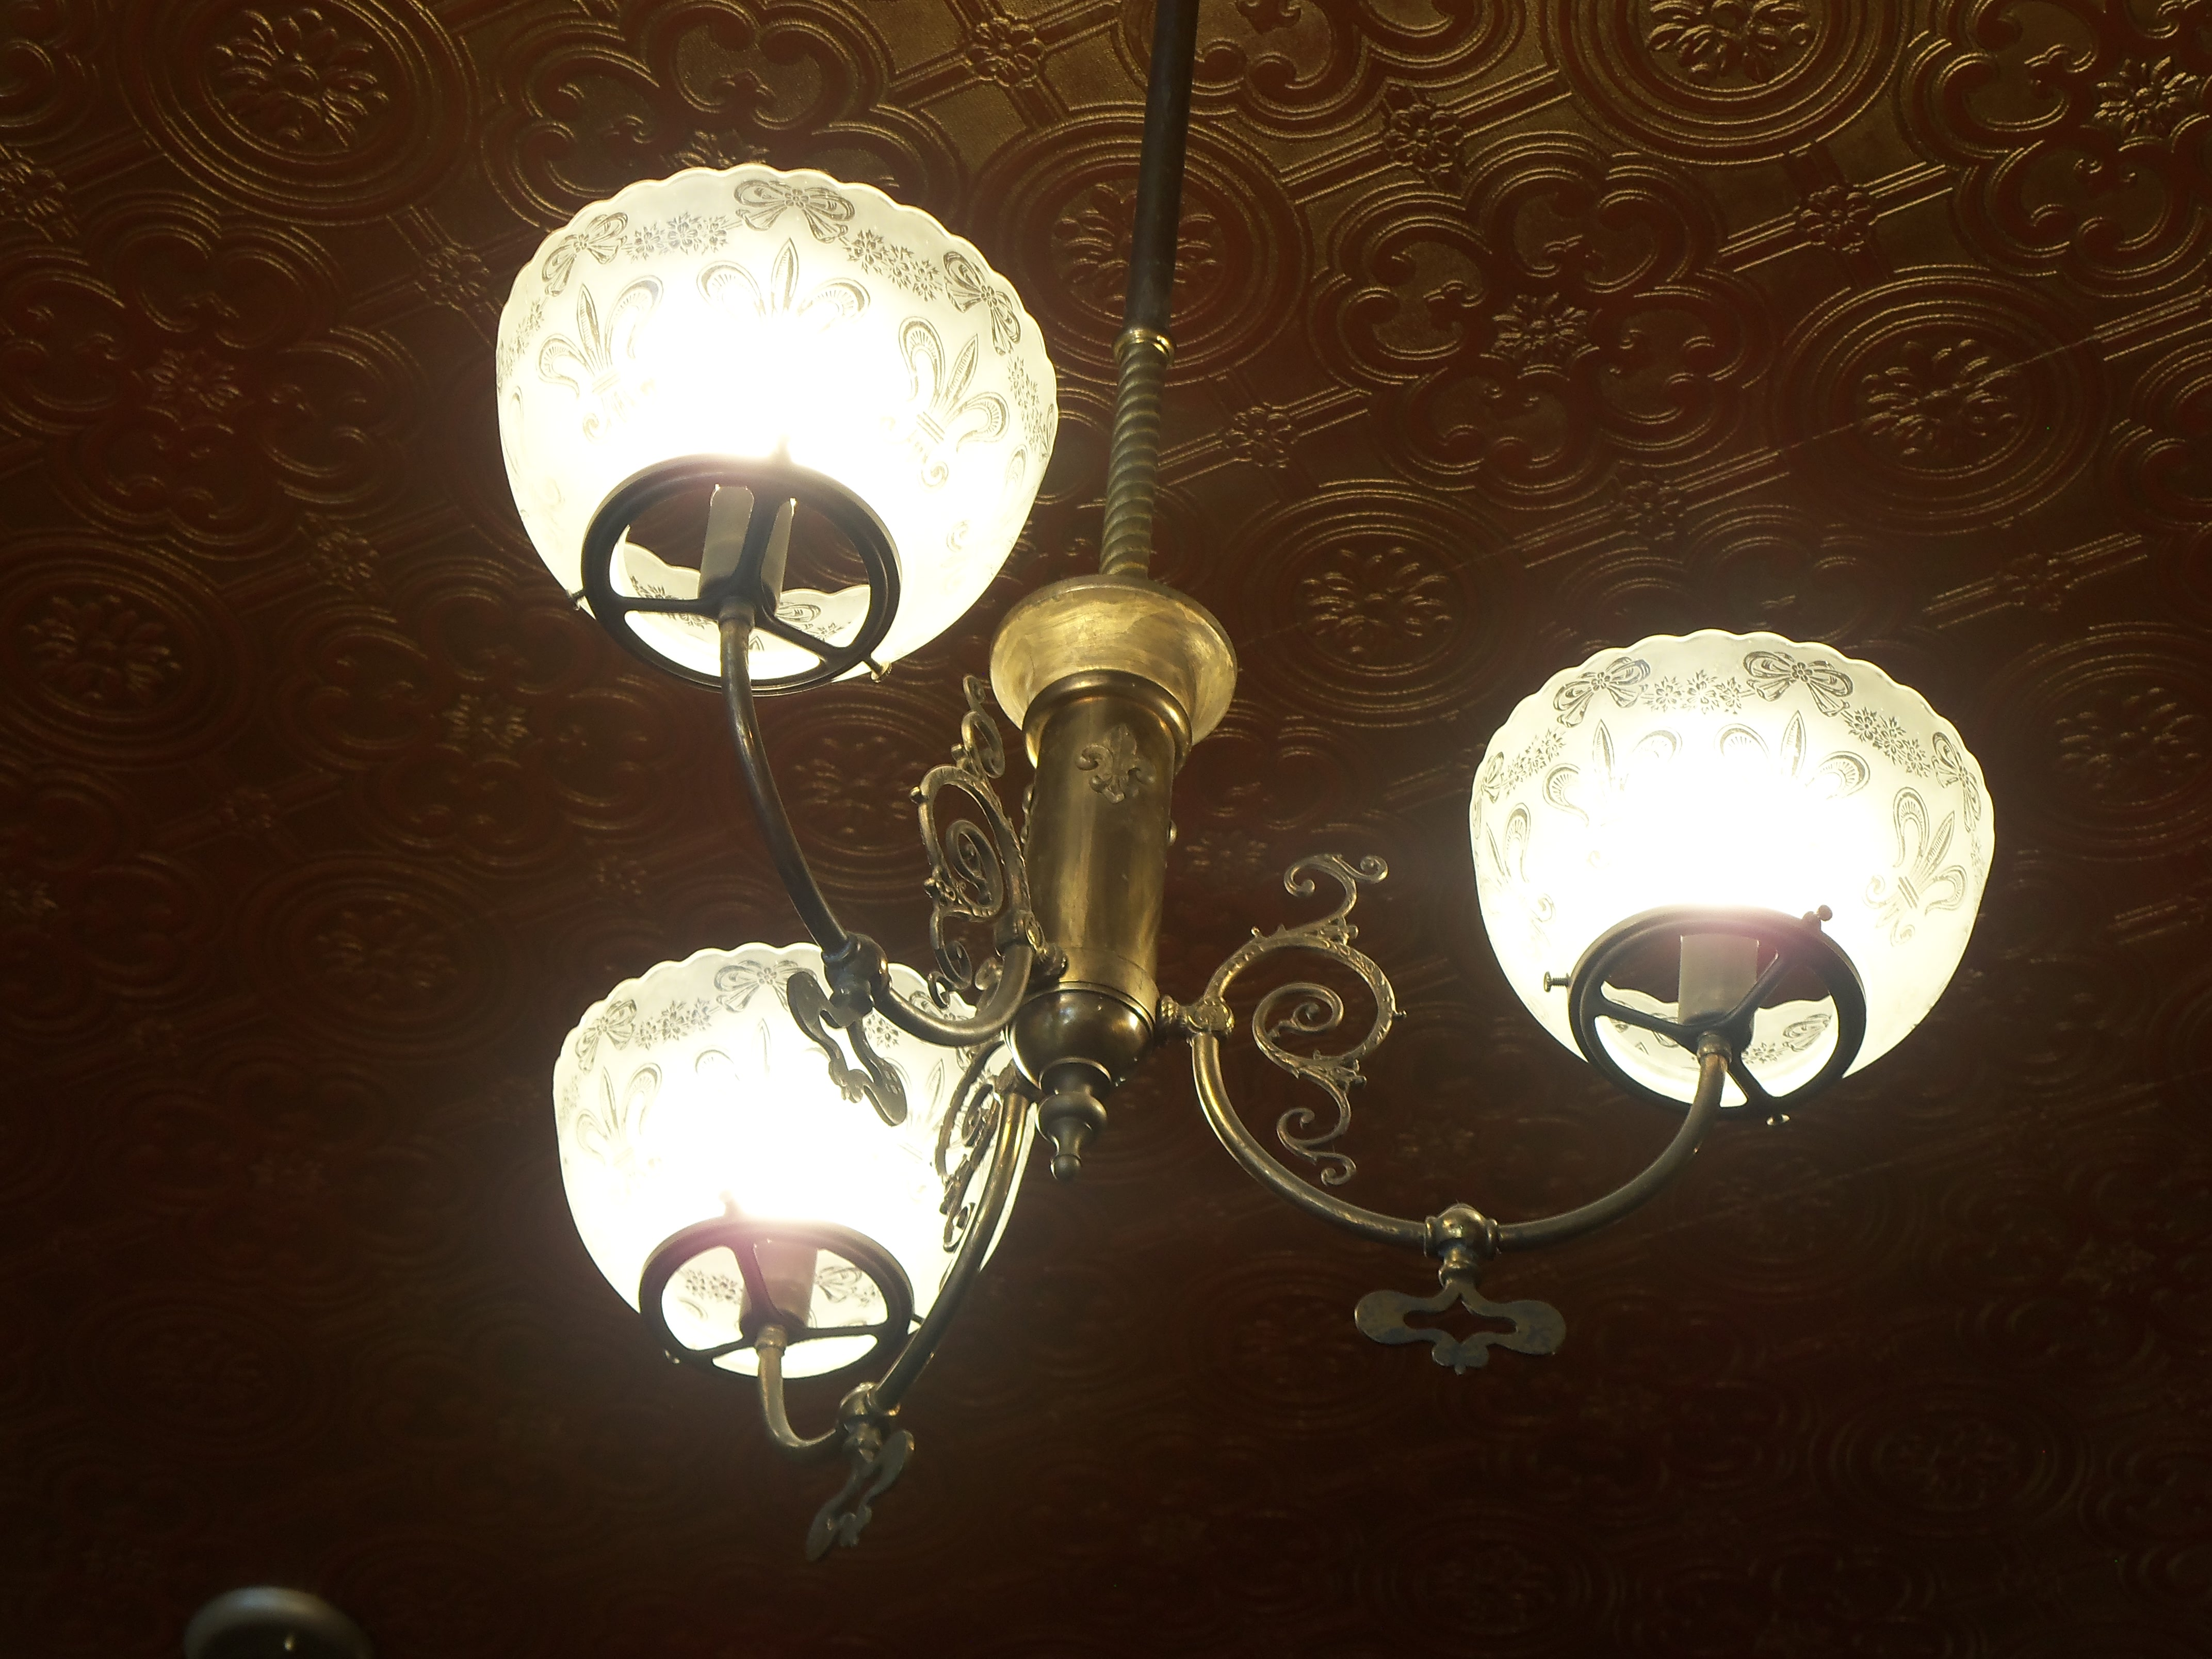 The Three Chandeliers Hanging From The Center Of The Room Were Originally Gas  Lamps From The 1880s That Were Later Converted To Electric.